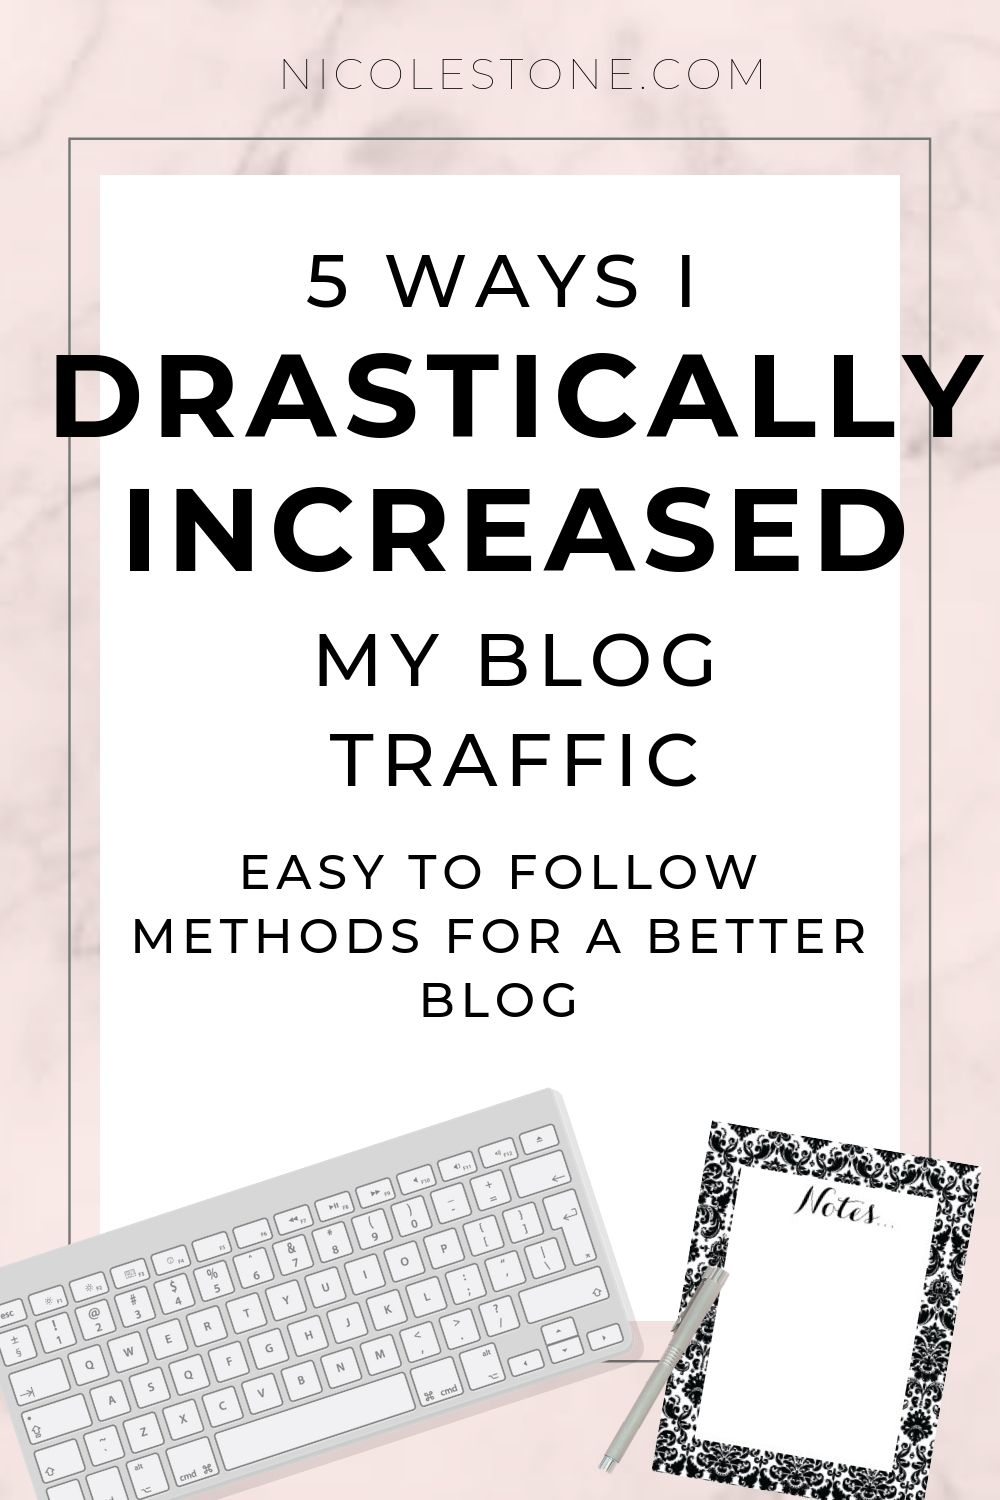 Five ways I drastically increased my blog traffic.  Easy to follow methods for a better blog! #blogtraffic #blogging #blogtips